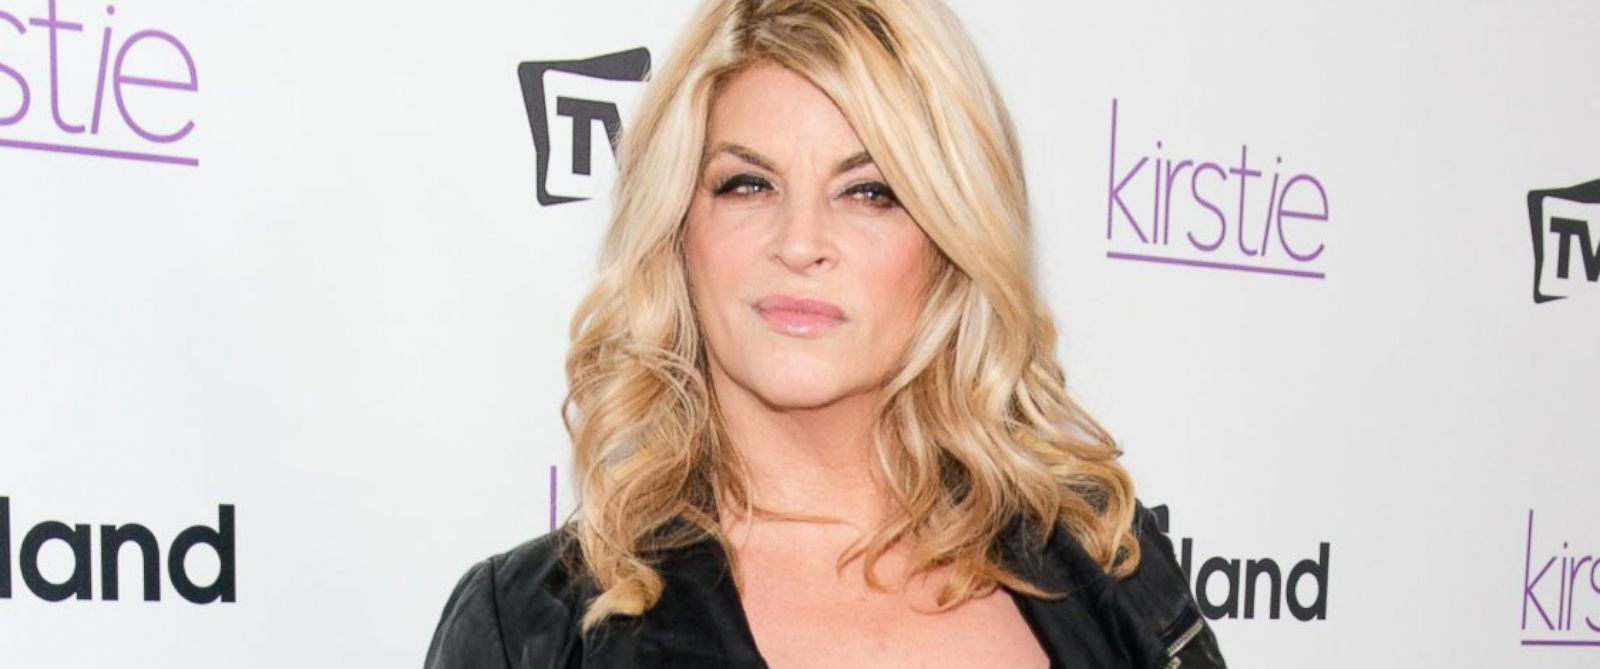 "PHOTO: Actress Kirstie Alley attends the ""Kirstie"" series premiere party at Harlow, Dec. 3, 2013 in New York City."